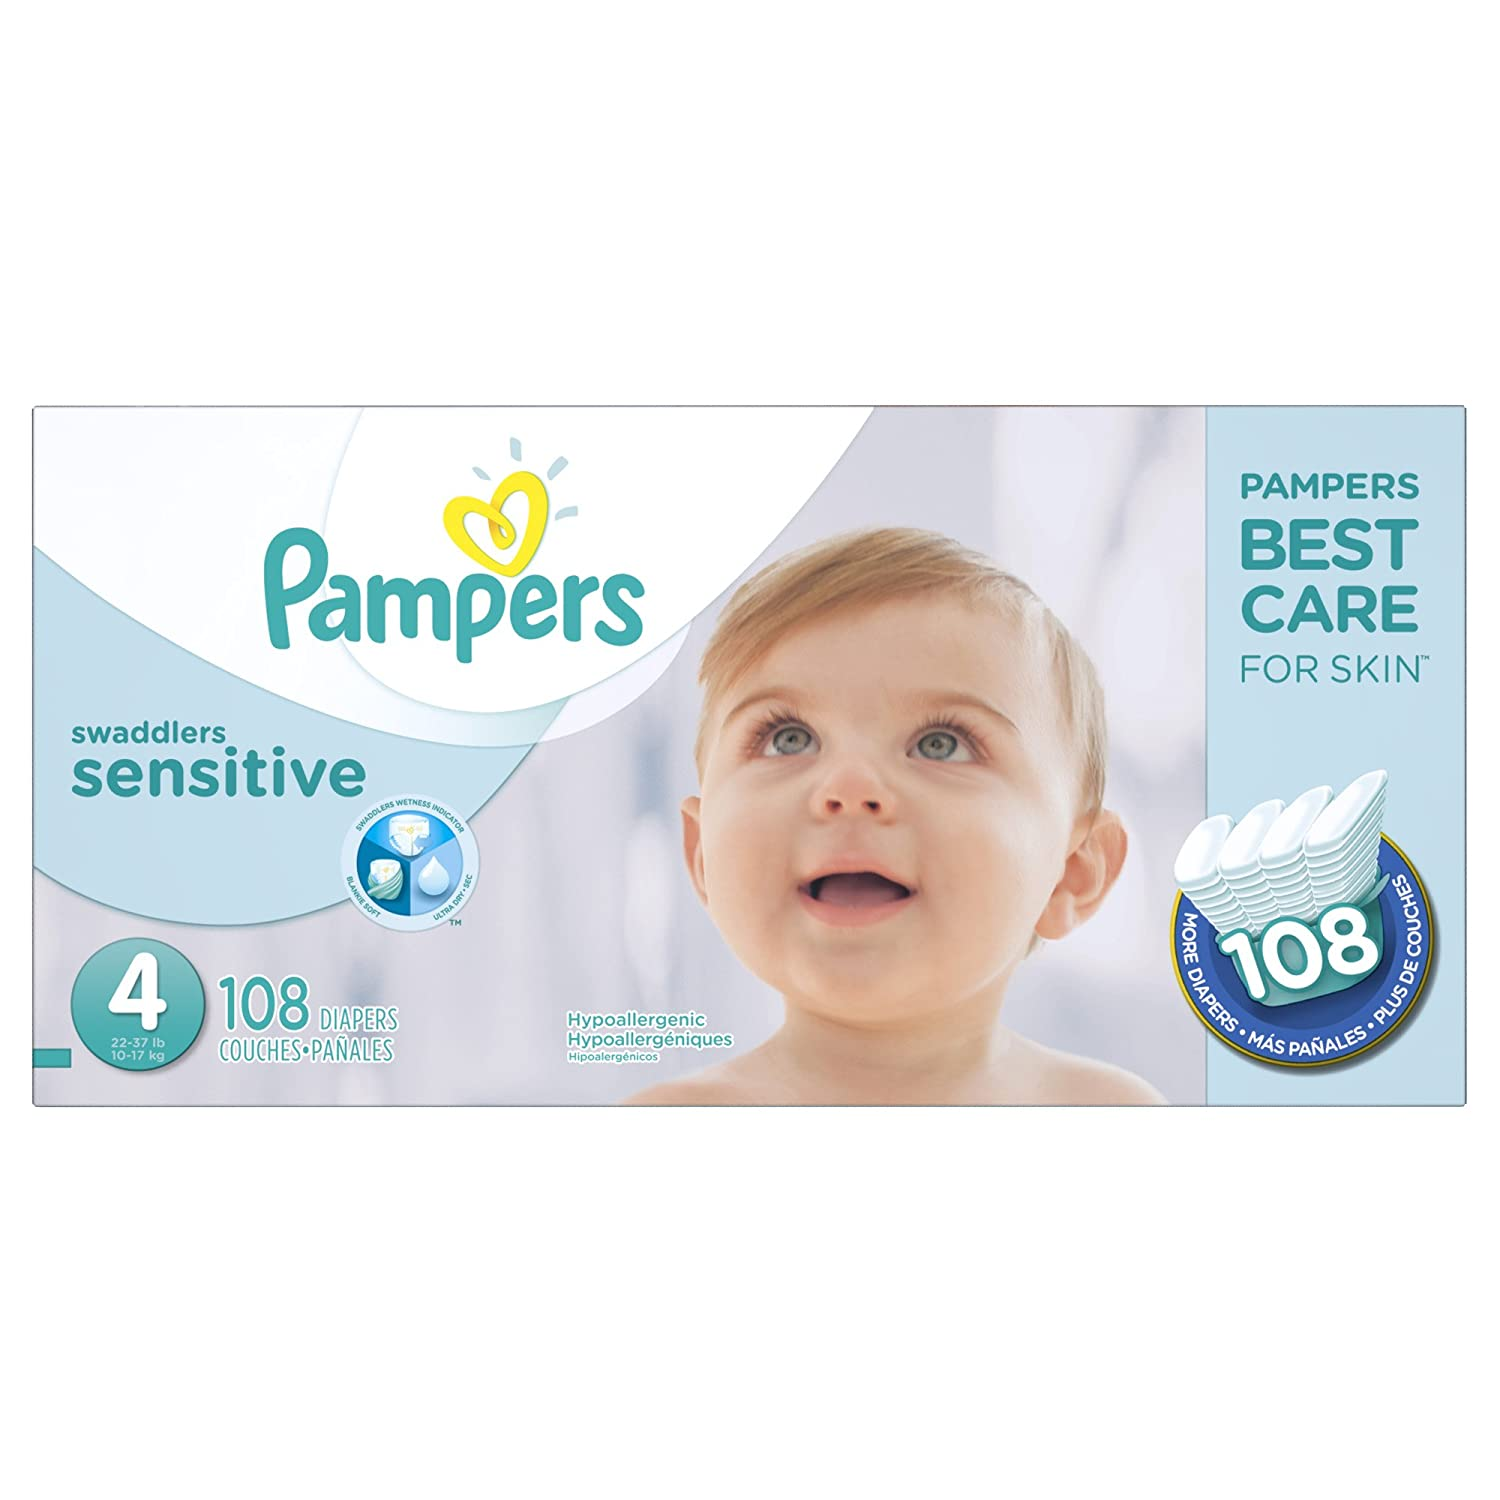 Pampers Swaddlers SENSITIVE Disposable Baby Diapers Size 4, Super Economy Pack, 108 Count 37000866244